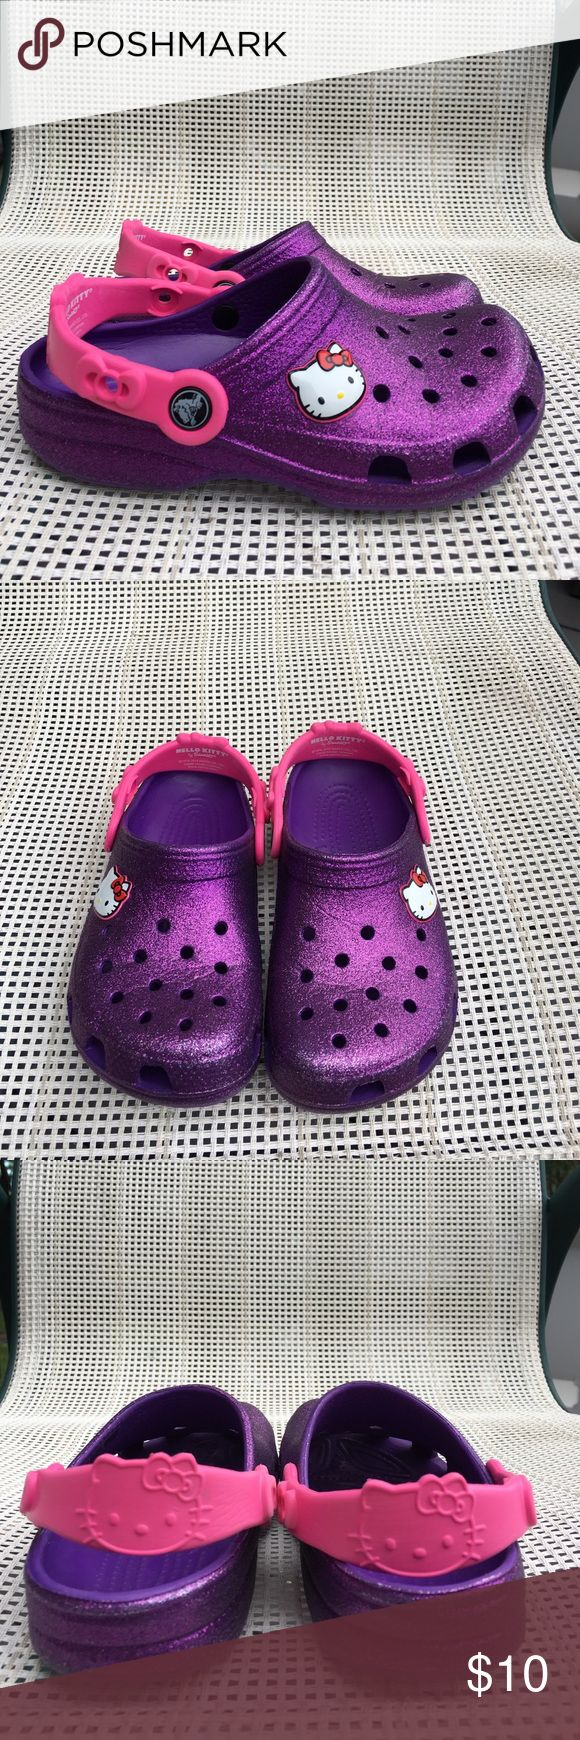 Crocs Hello Kitty metallic purple with pink strap Very nice crocs slip on shoes with Hello Kitty emblem on side. Very nice condition, no defects.EUC CROCS Shoes Sandals & Flip Flops